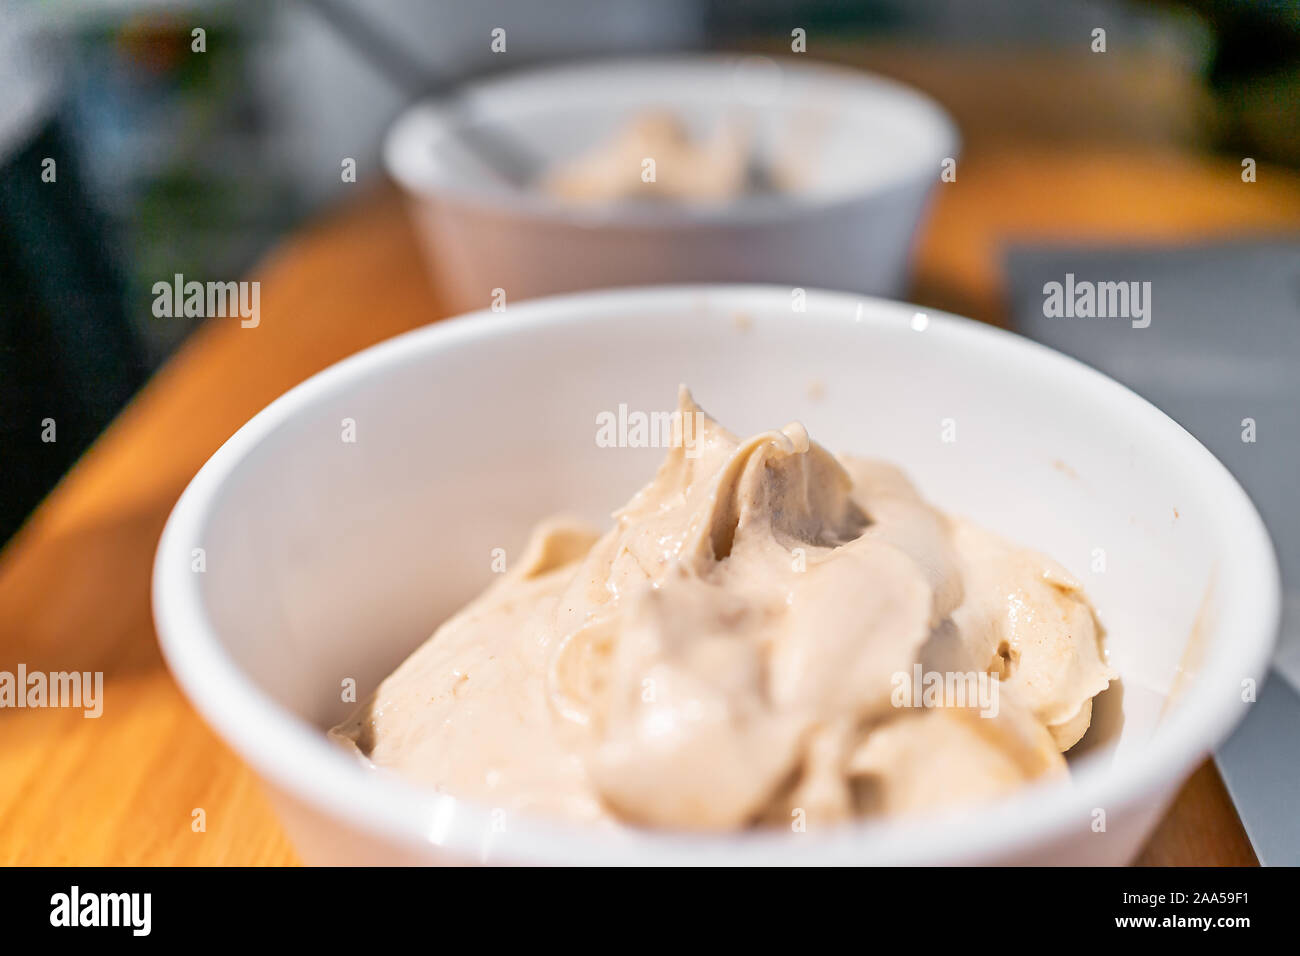 soft serve vanilla ice cream bowls with bokeh background of table and laptop puter made with banana nice cream vegan dessert 2AA59F1